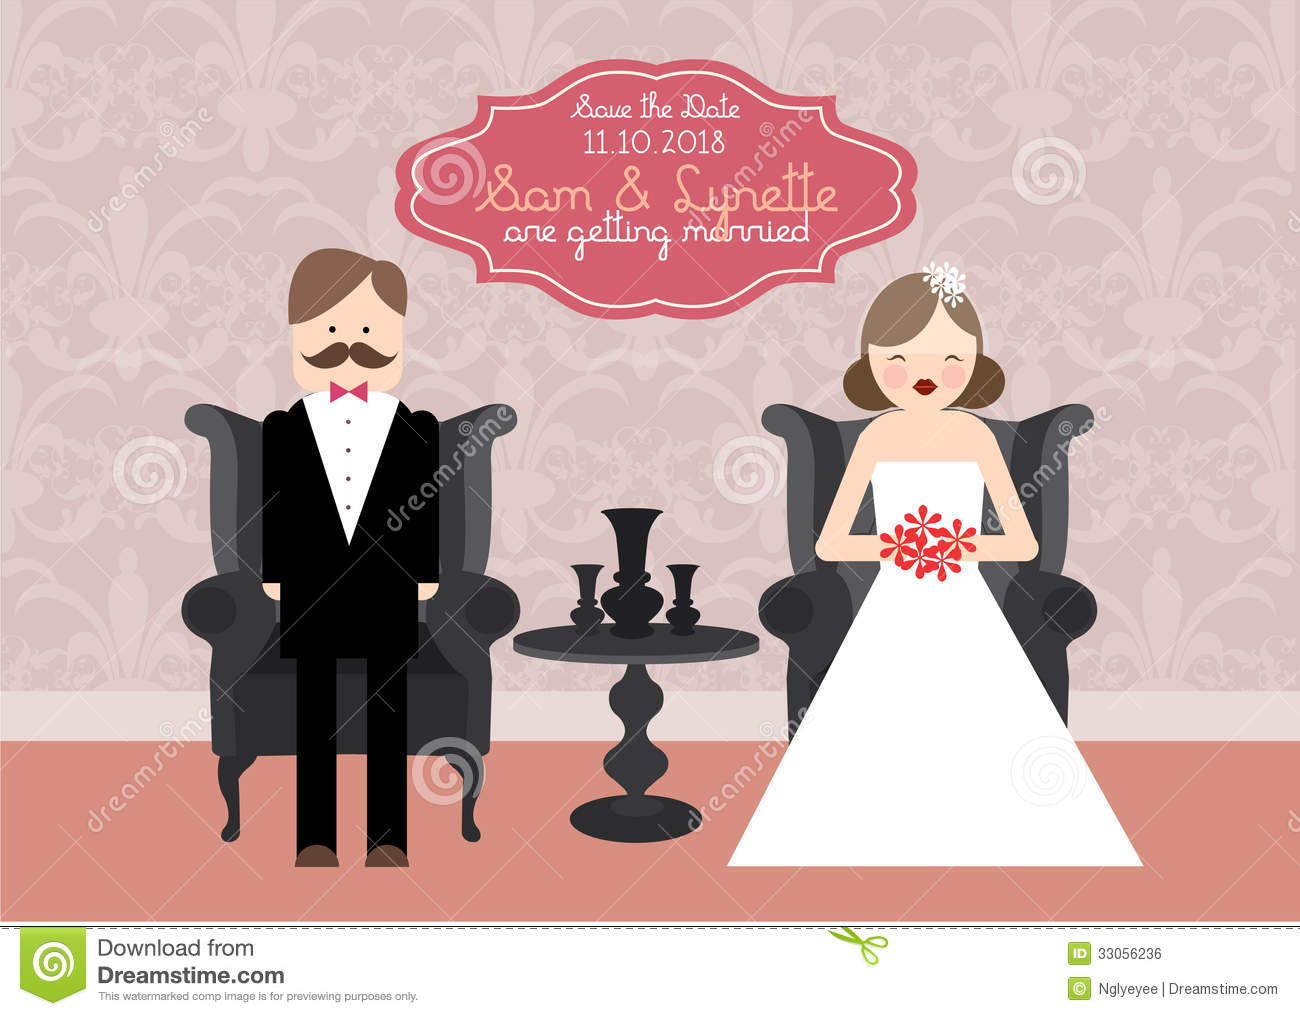 wedding invitation templates illustrator wedding invitation card template illustration royalty stock